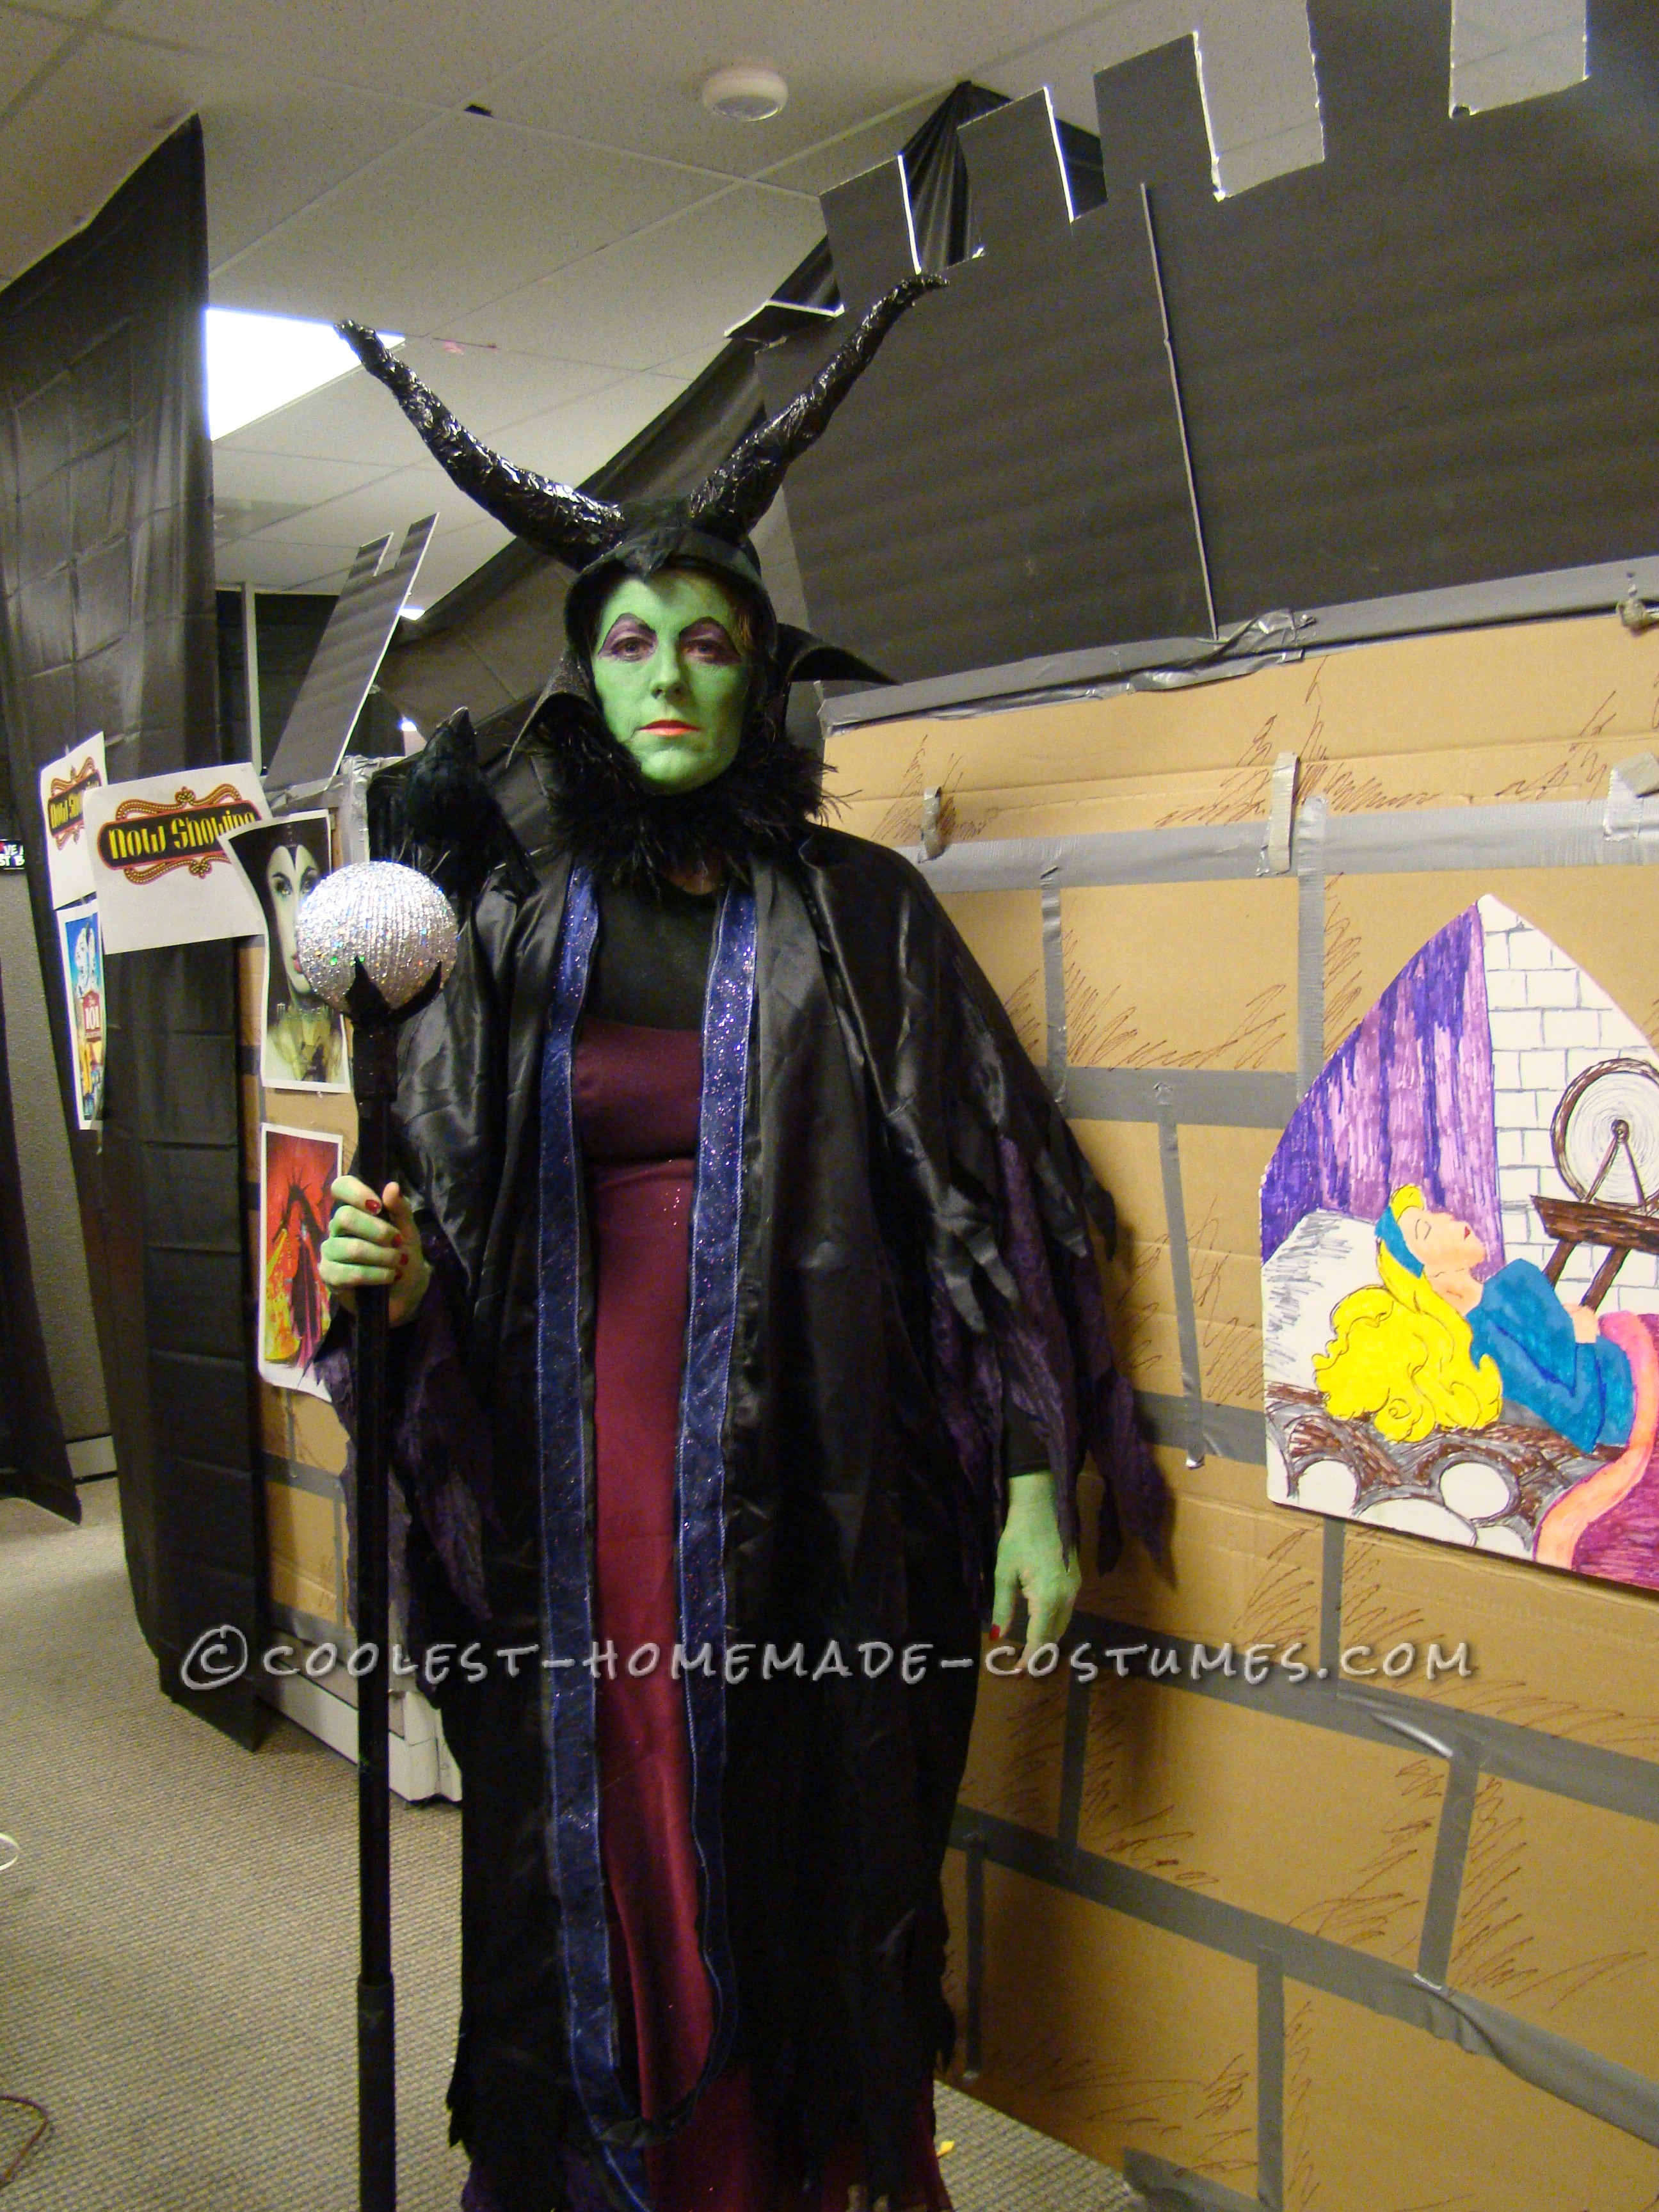 Coolest Homemade Malecifent Costume